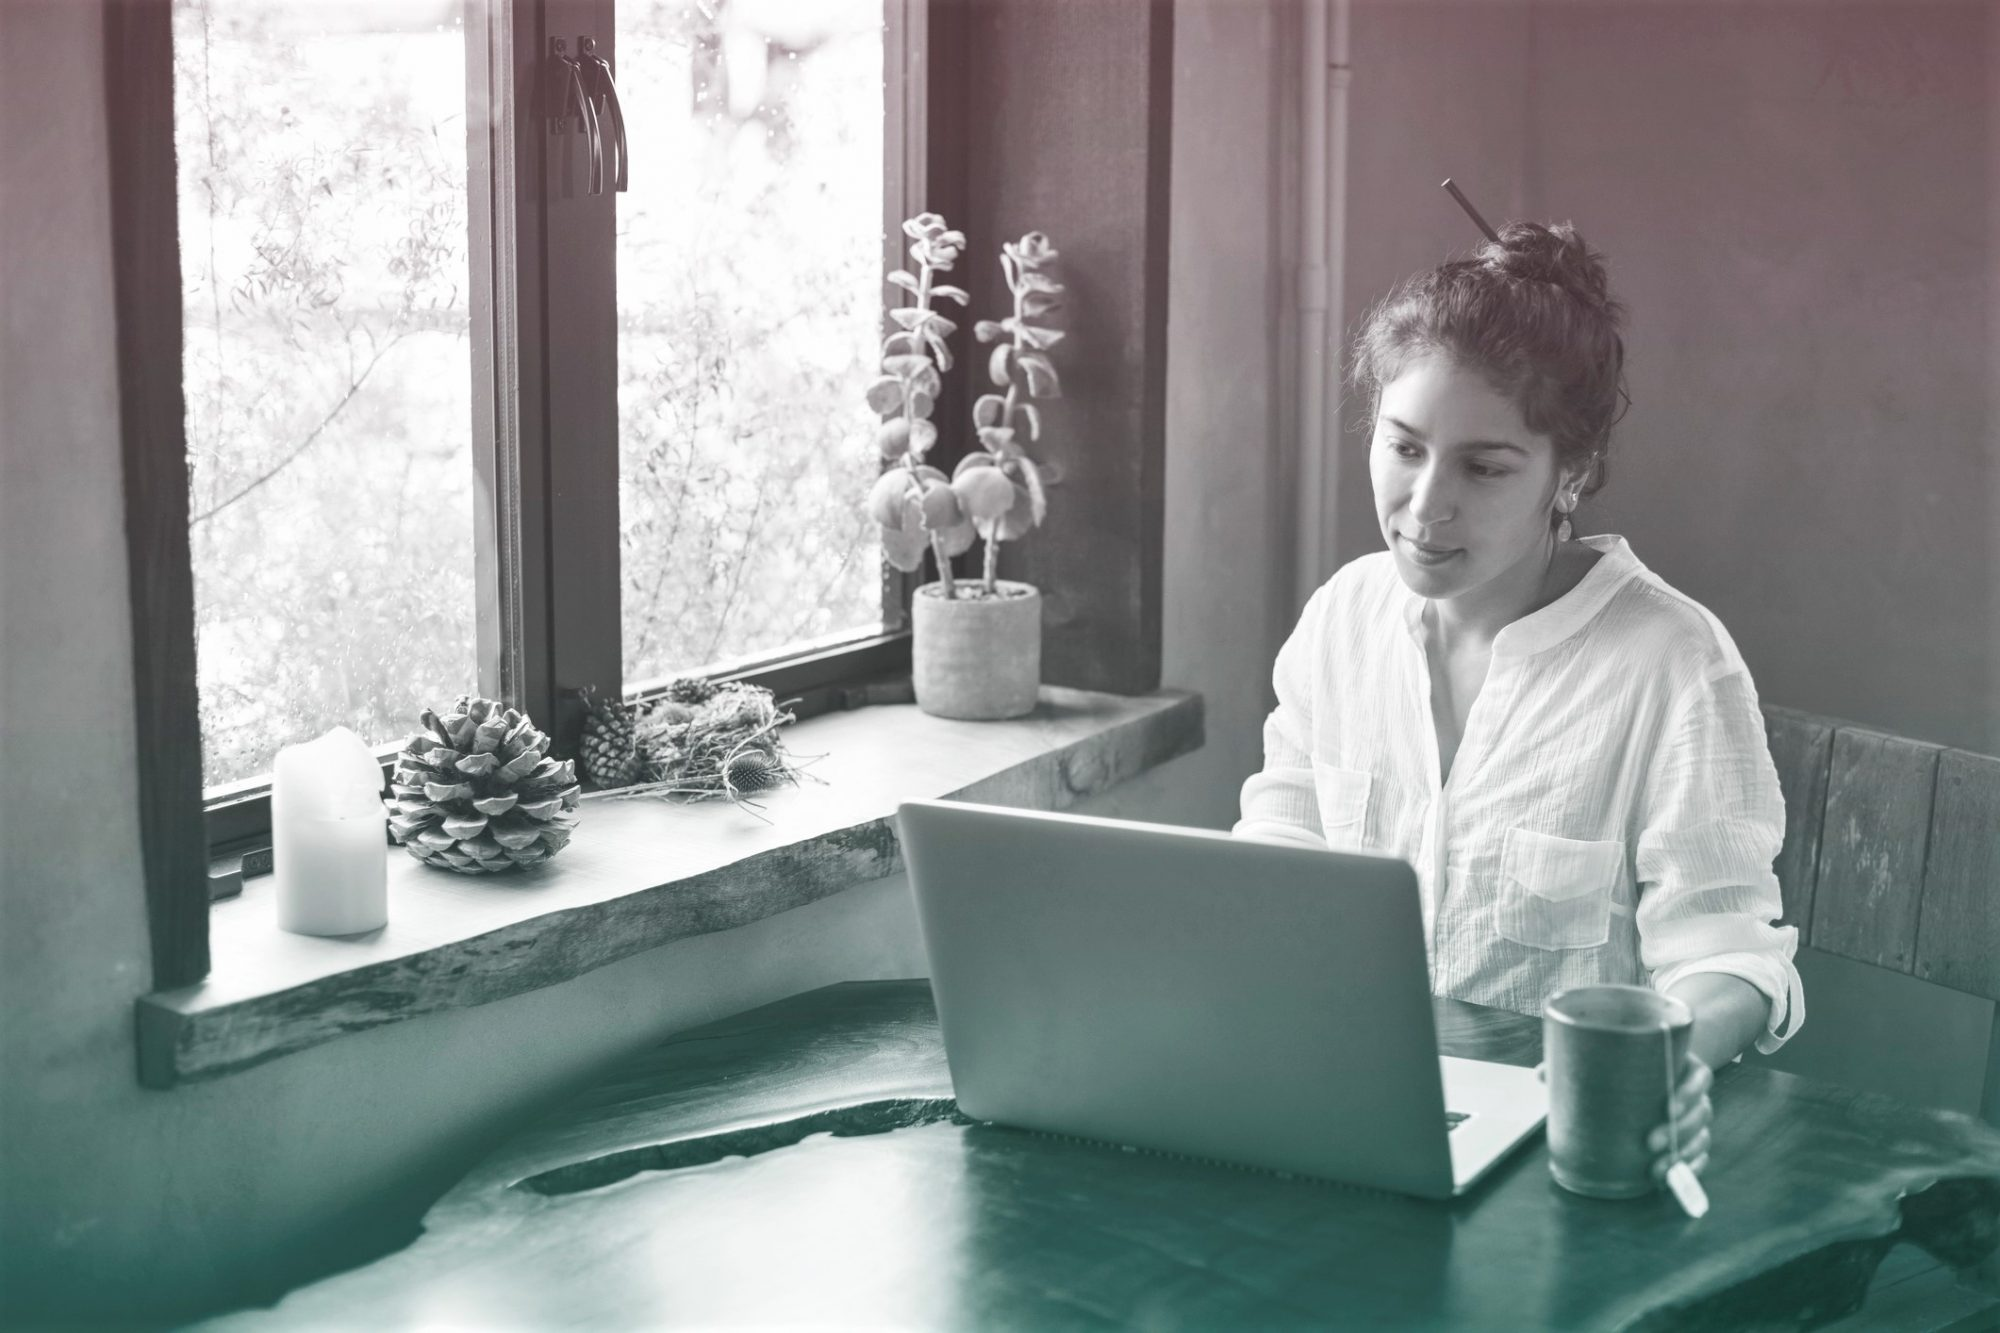 Young Adult Multi-ethnic Woman Working from Home on Laptop